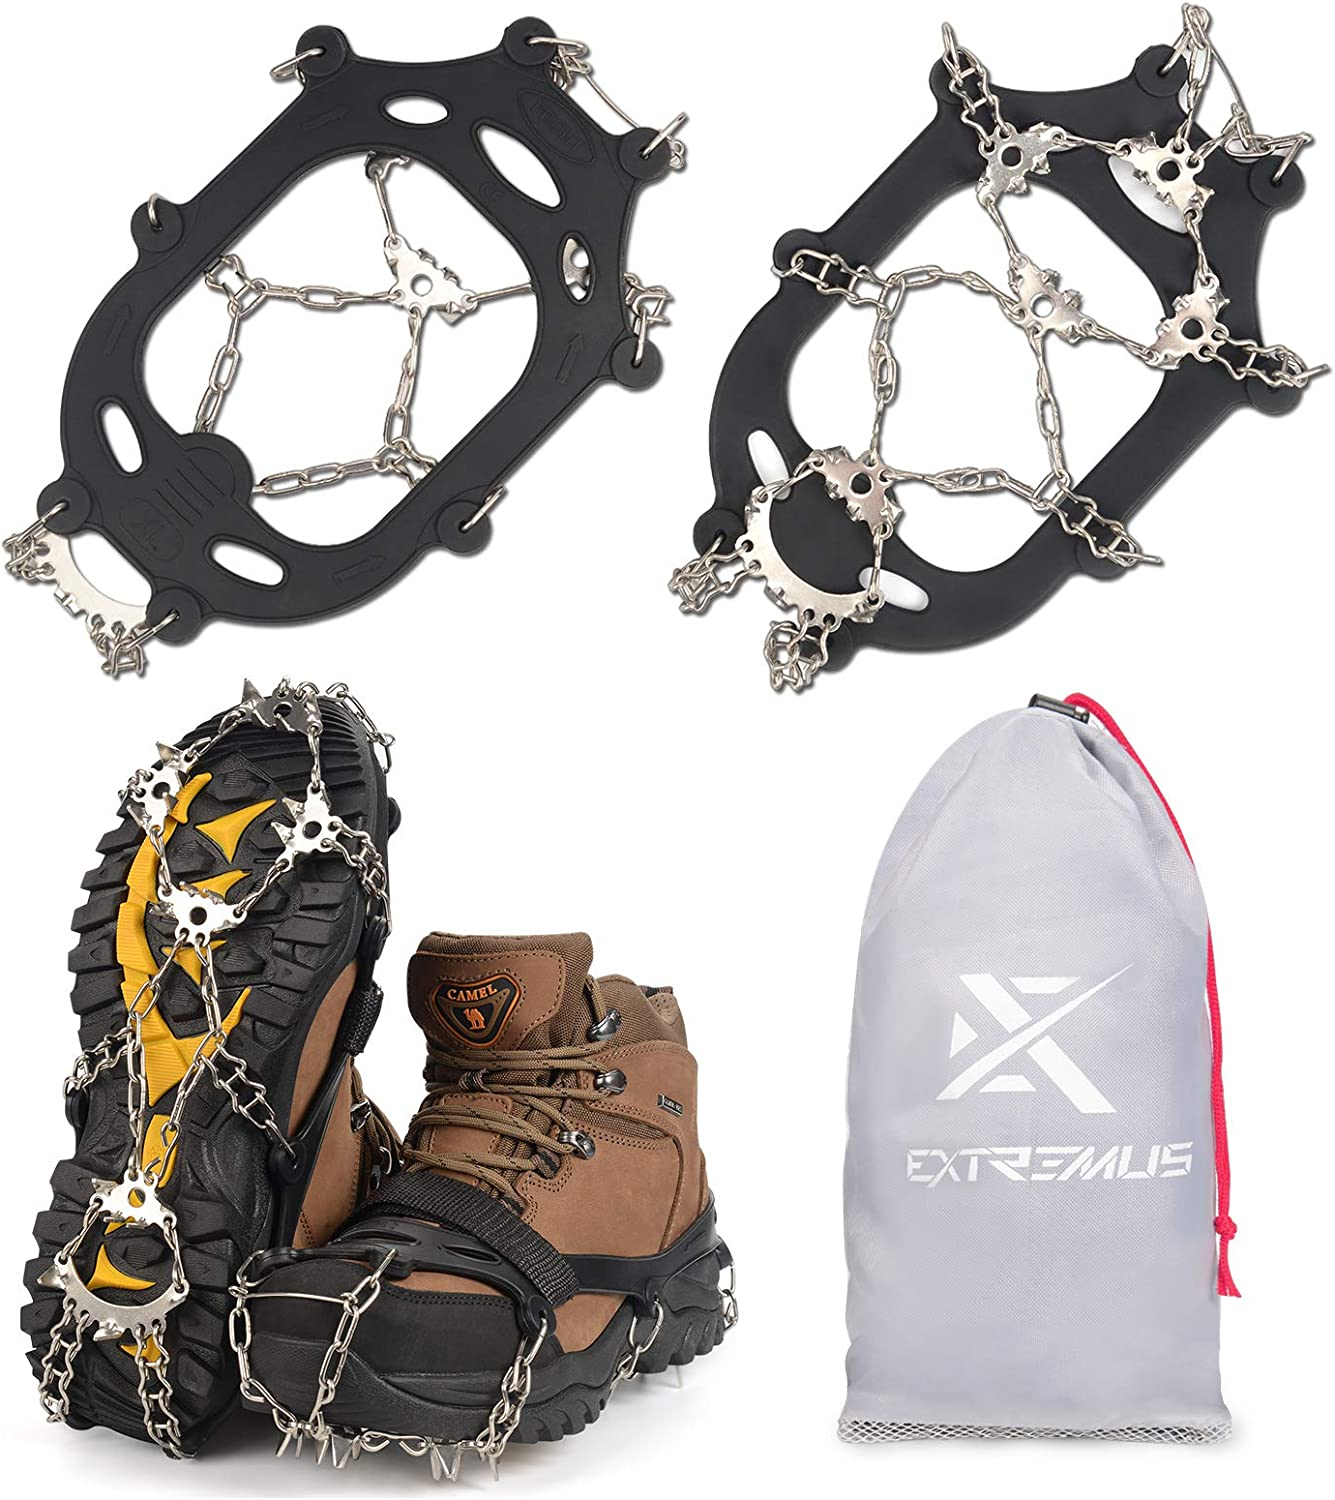 Extremus El Paso Mall 23-Spike Ice Cleats Crampons or trust Men for Abrasio Women